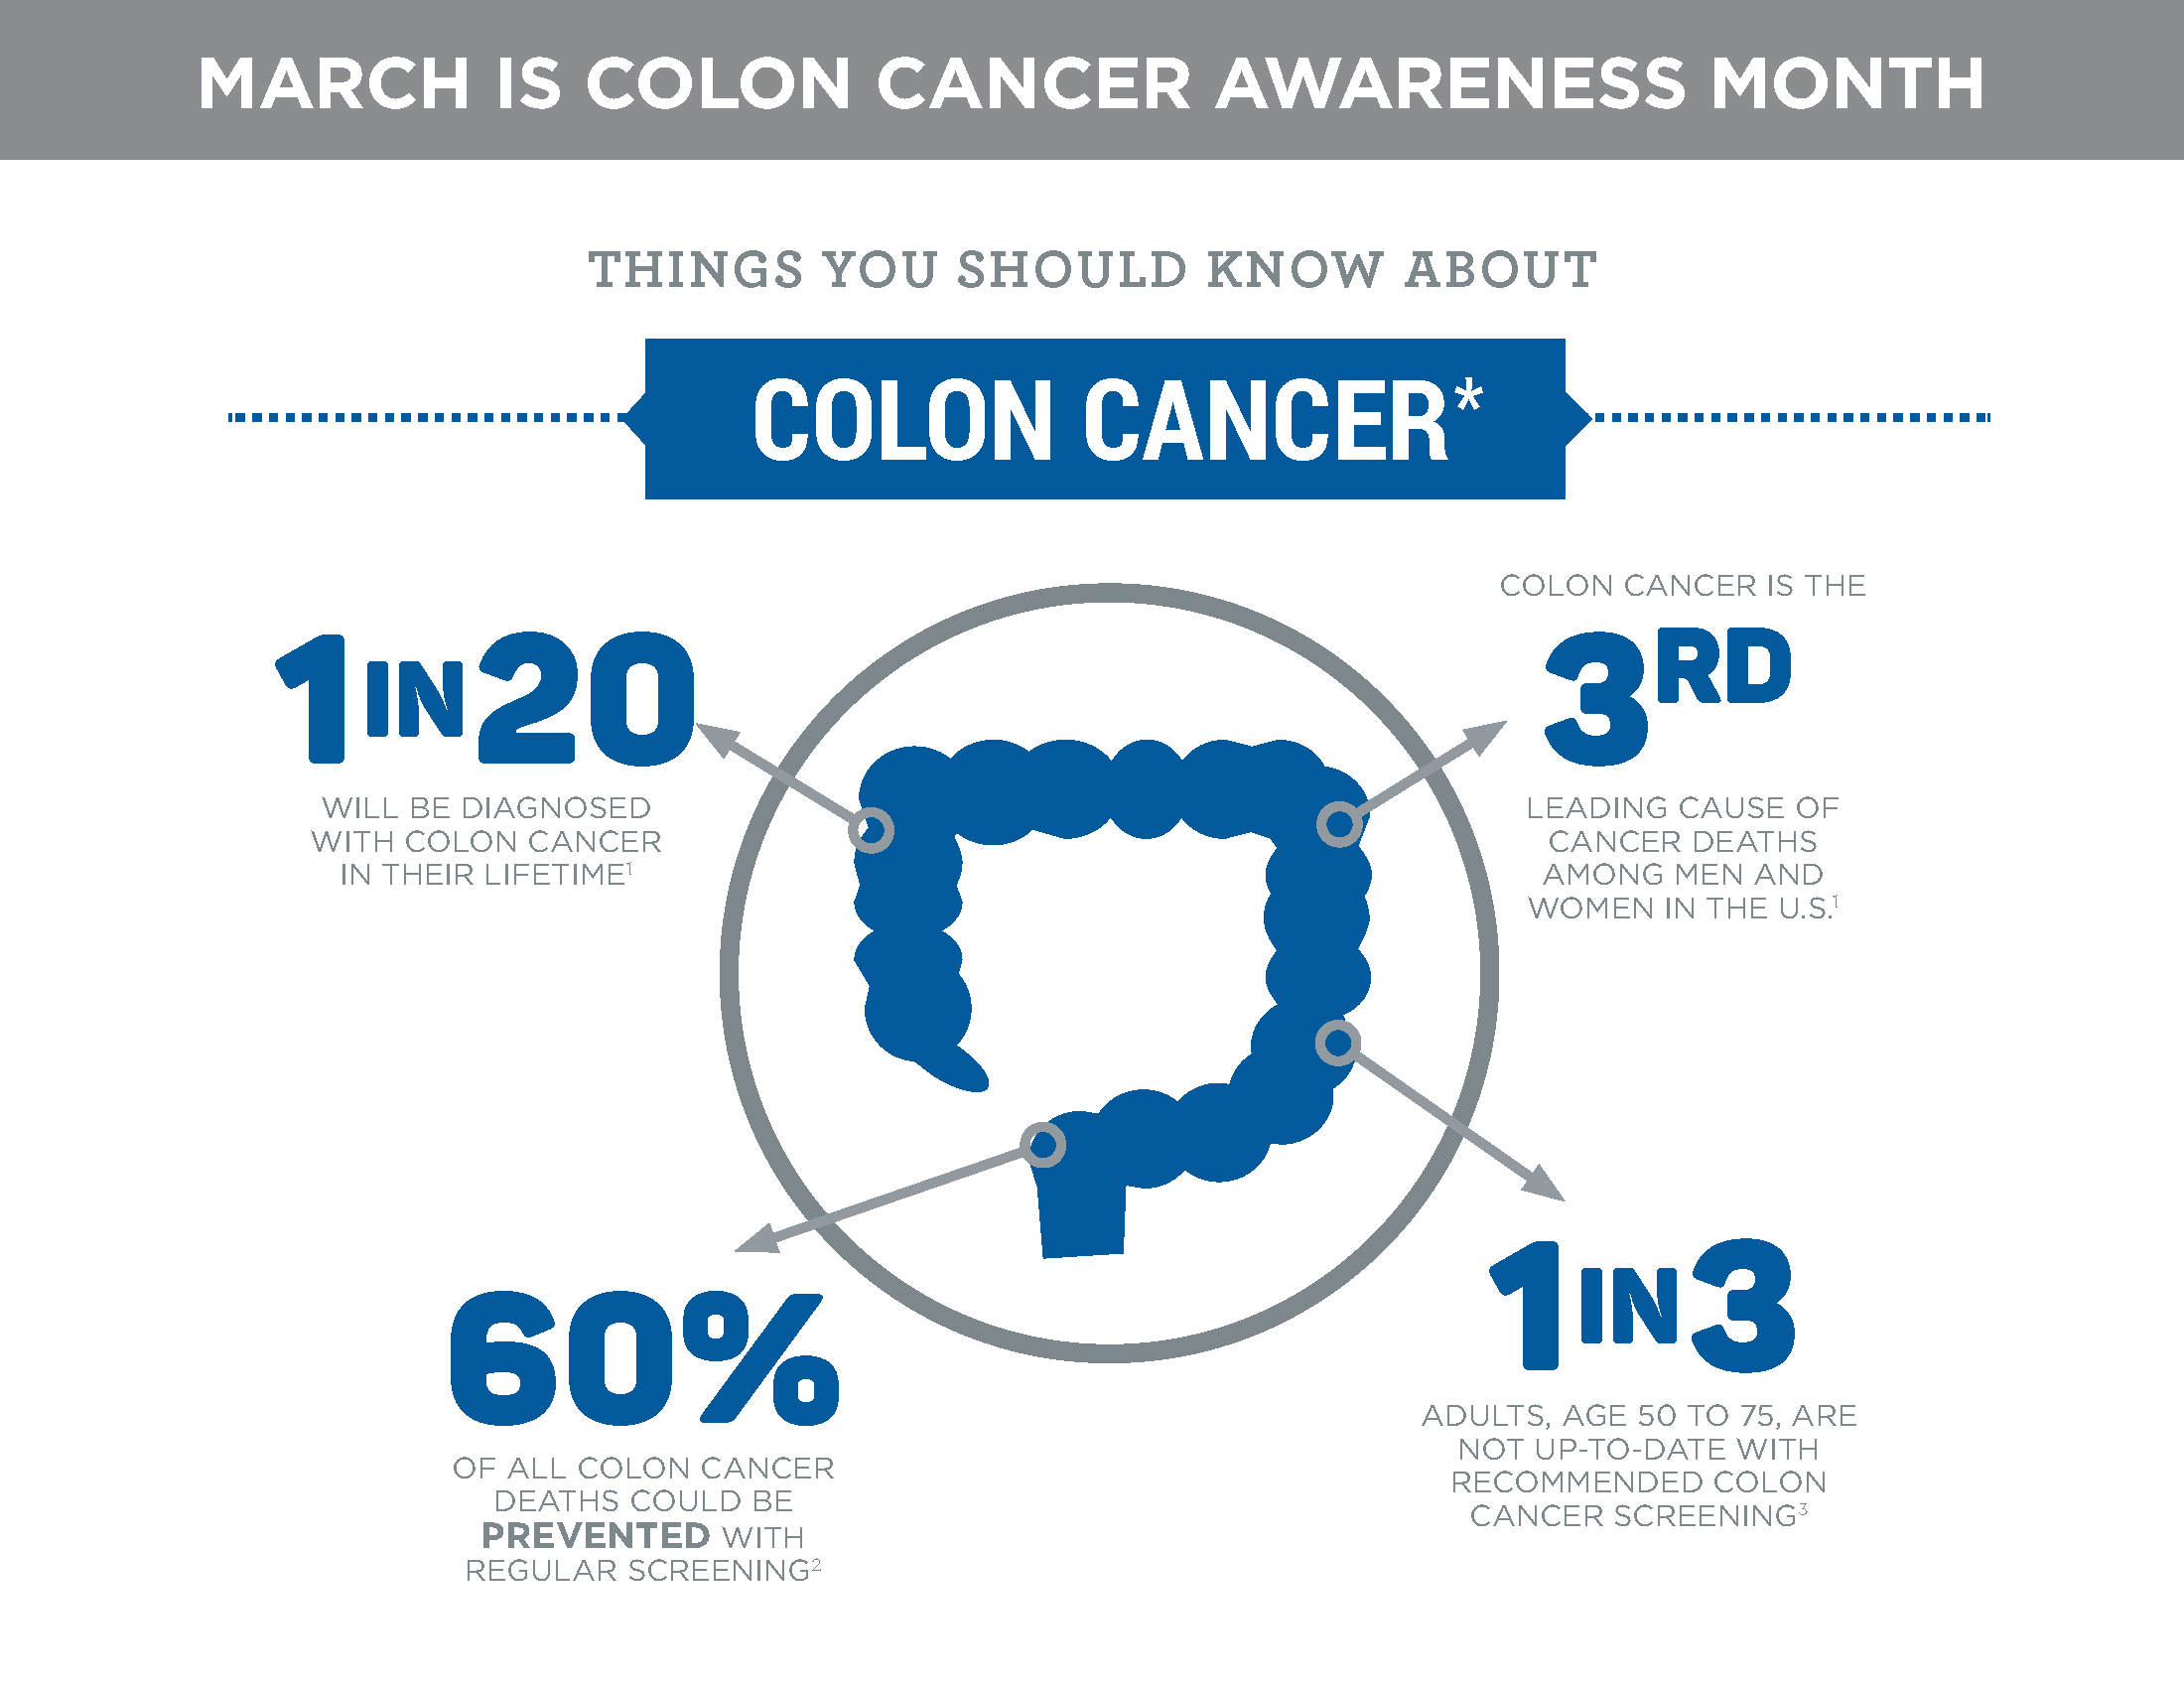 genetic screening for colorectal cancer essay Colon cancer screening guidelines may need revising  body mass index and aspirin use—and 63 genetic markers associated with colorectal cancer.